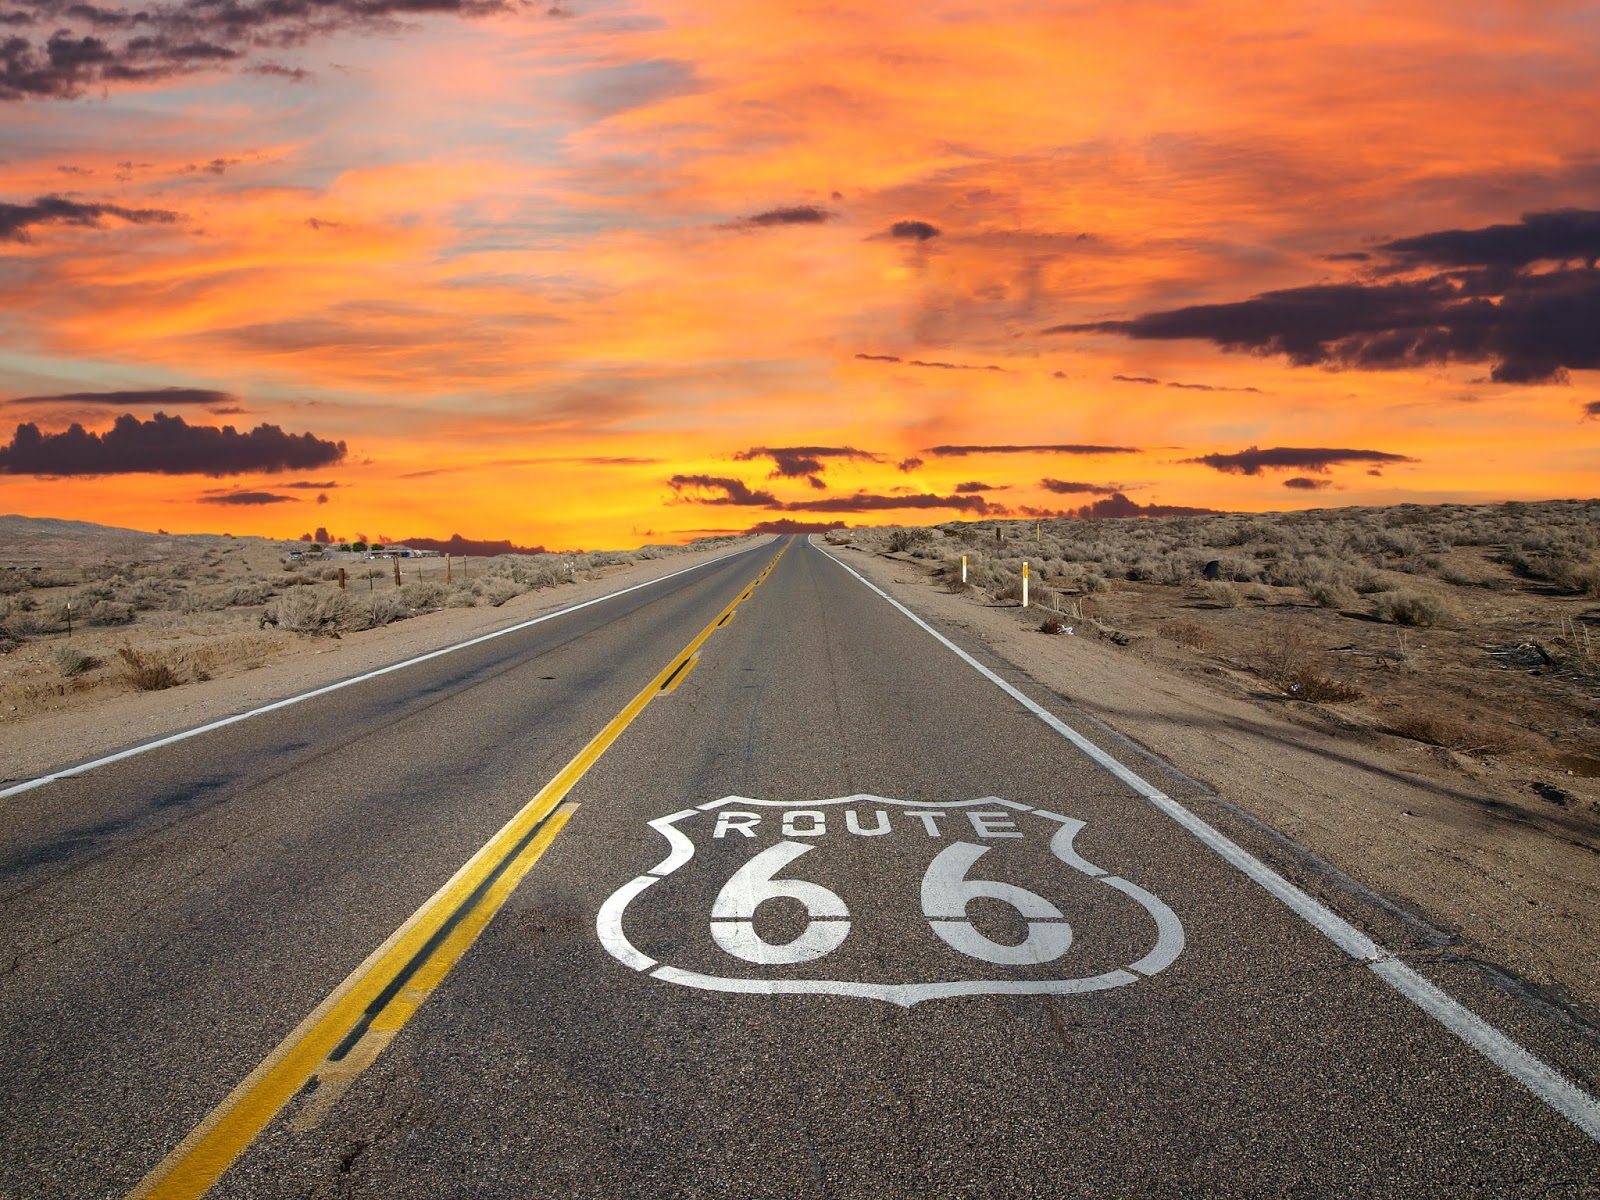 highway 66 or u s route 66 is a major u s highway created in 1926 the west end of the highway merges into u s 101 santa monica california